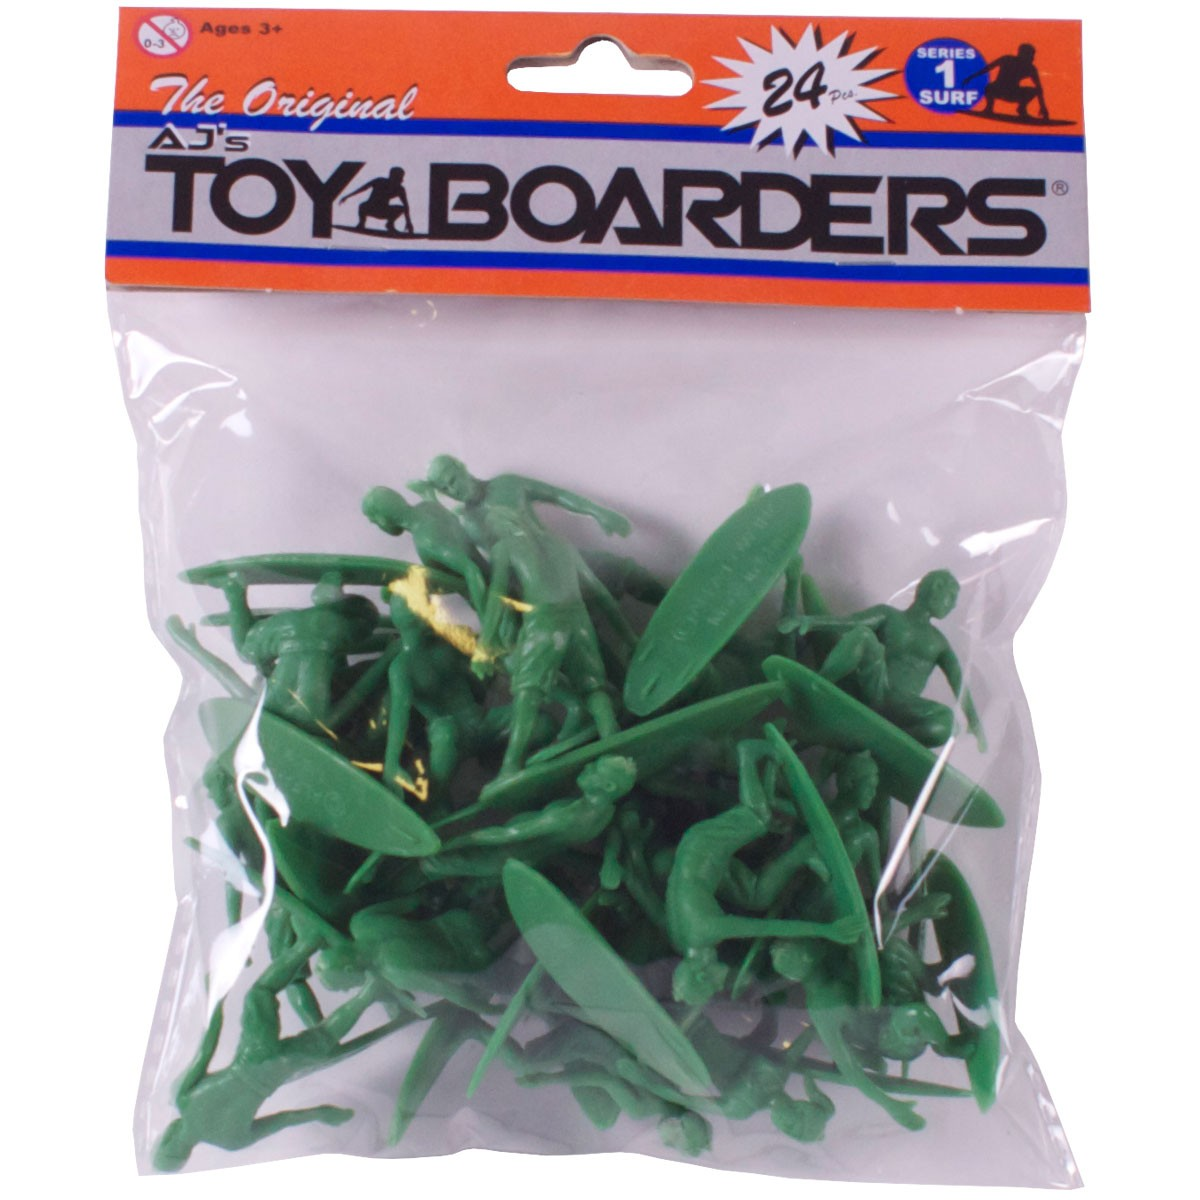 AJ's Toy Boarders 24-Pack - Surf - Series 1